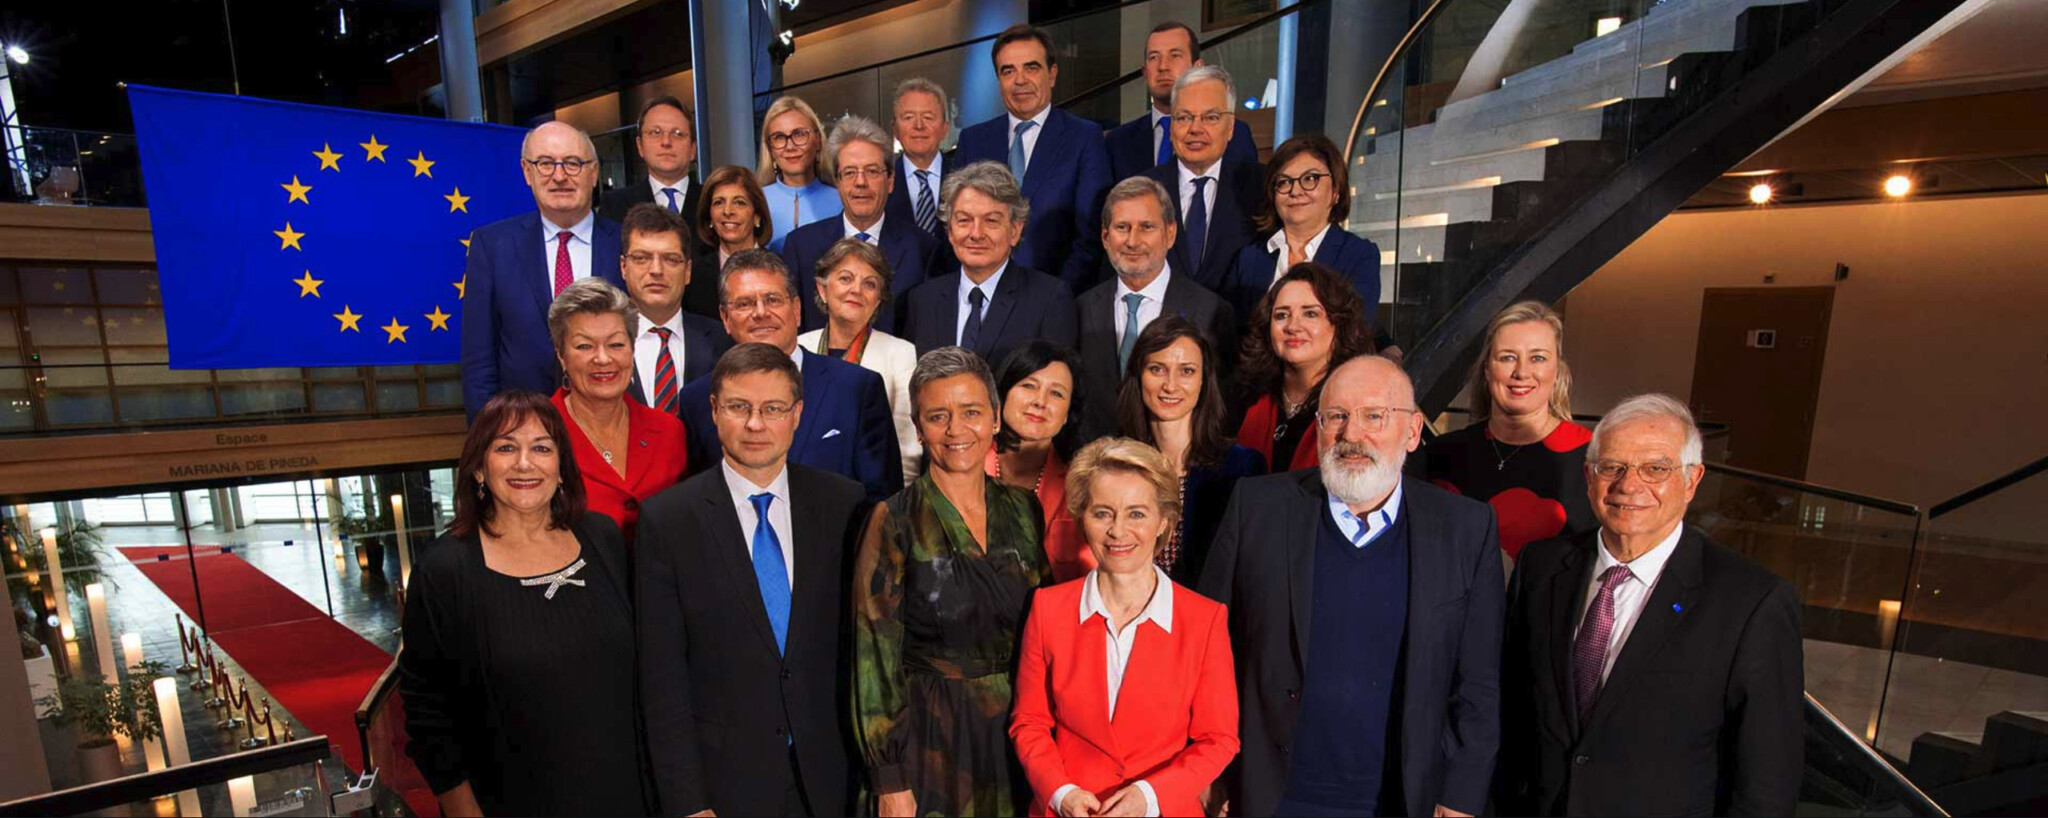 Can the international influence of the EU be strengthened?